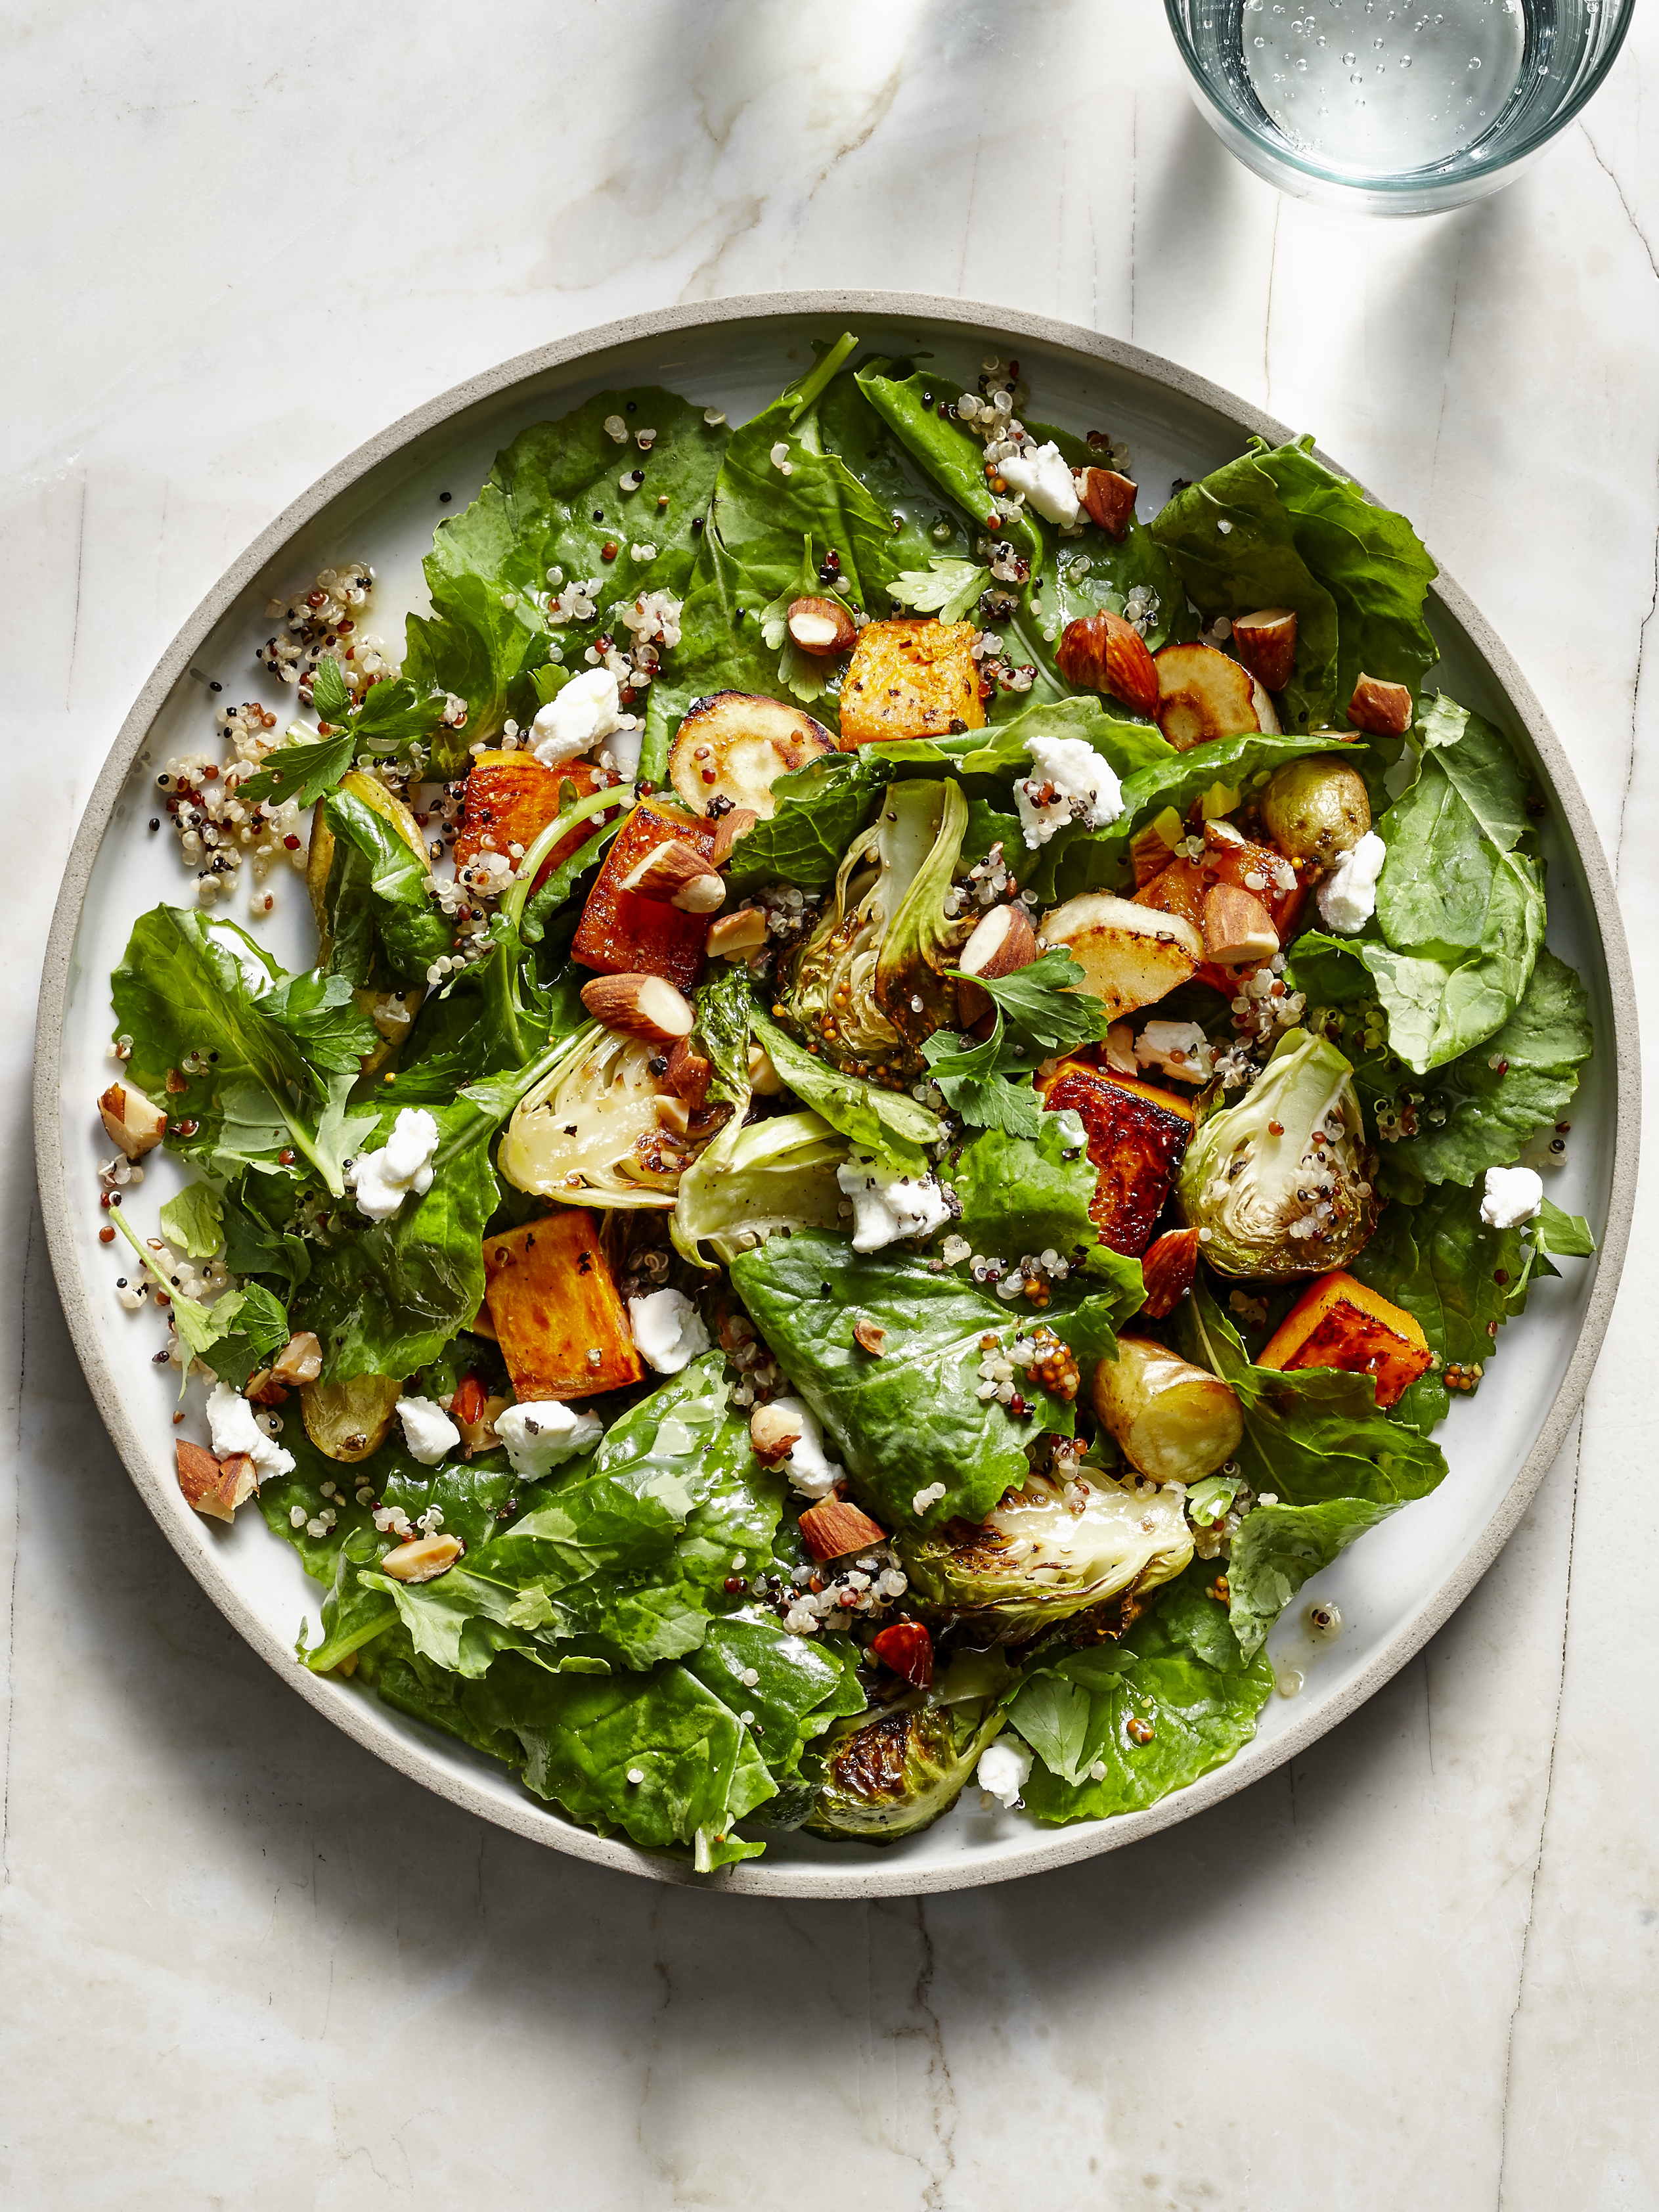 Baby Kale, Quinoa, and Roasted Vegetable Salad